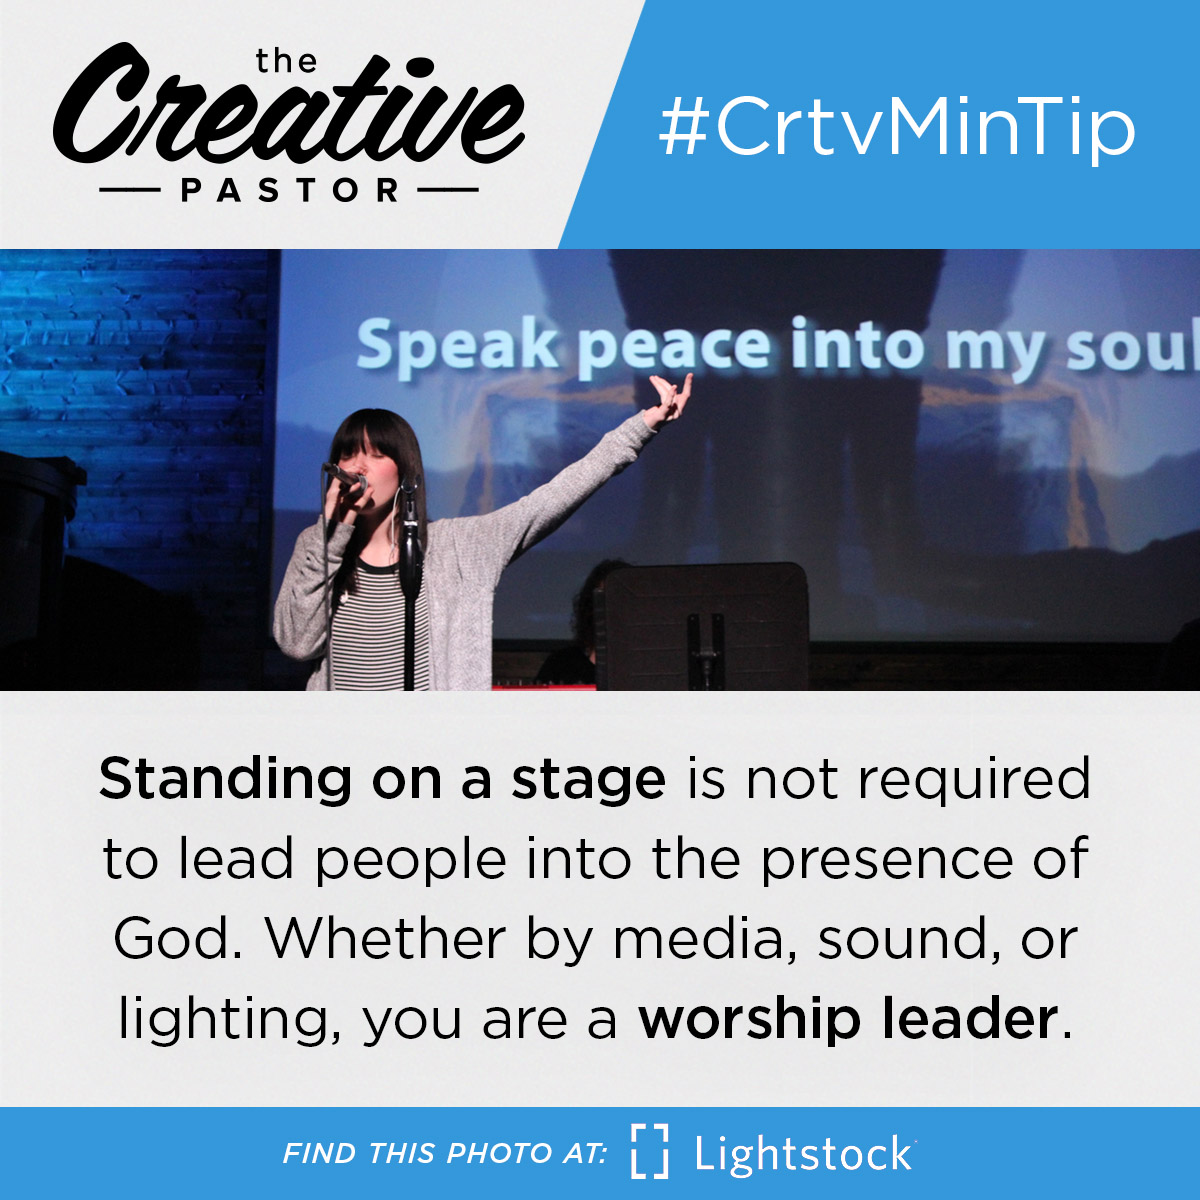 #CrtvMinTip: Standing on a stage is not required to lead people into the presence of God. Whether by media, sound, or lighting, you are a worship leader.